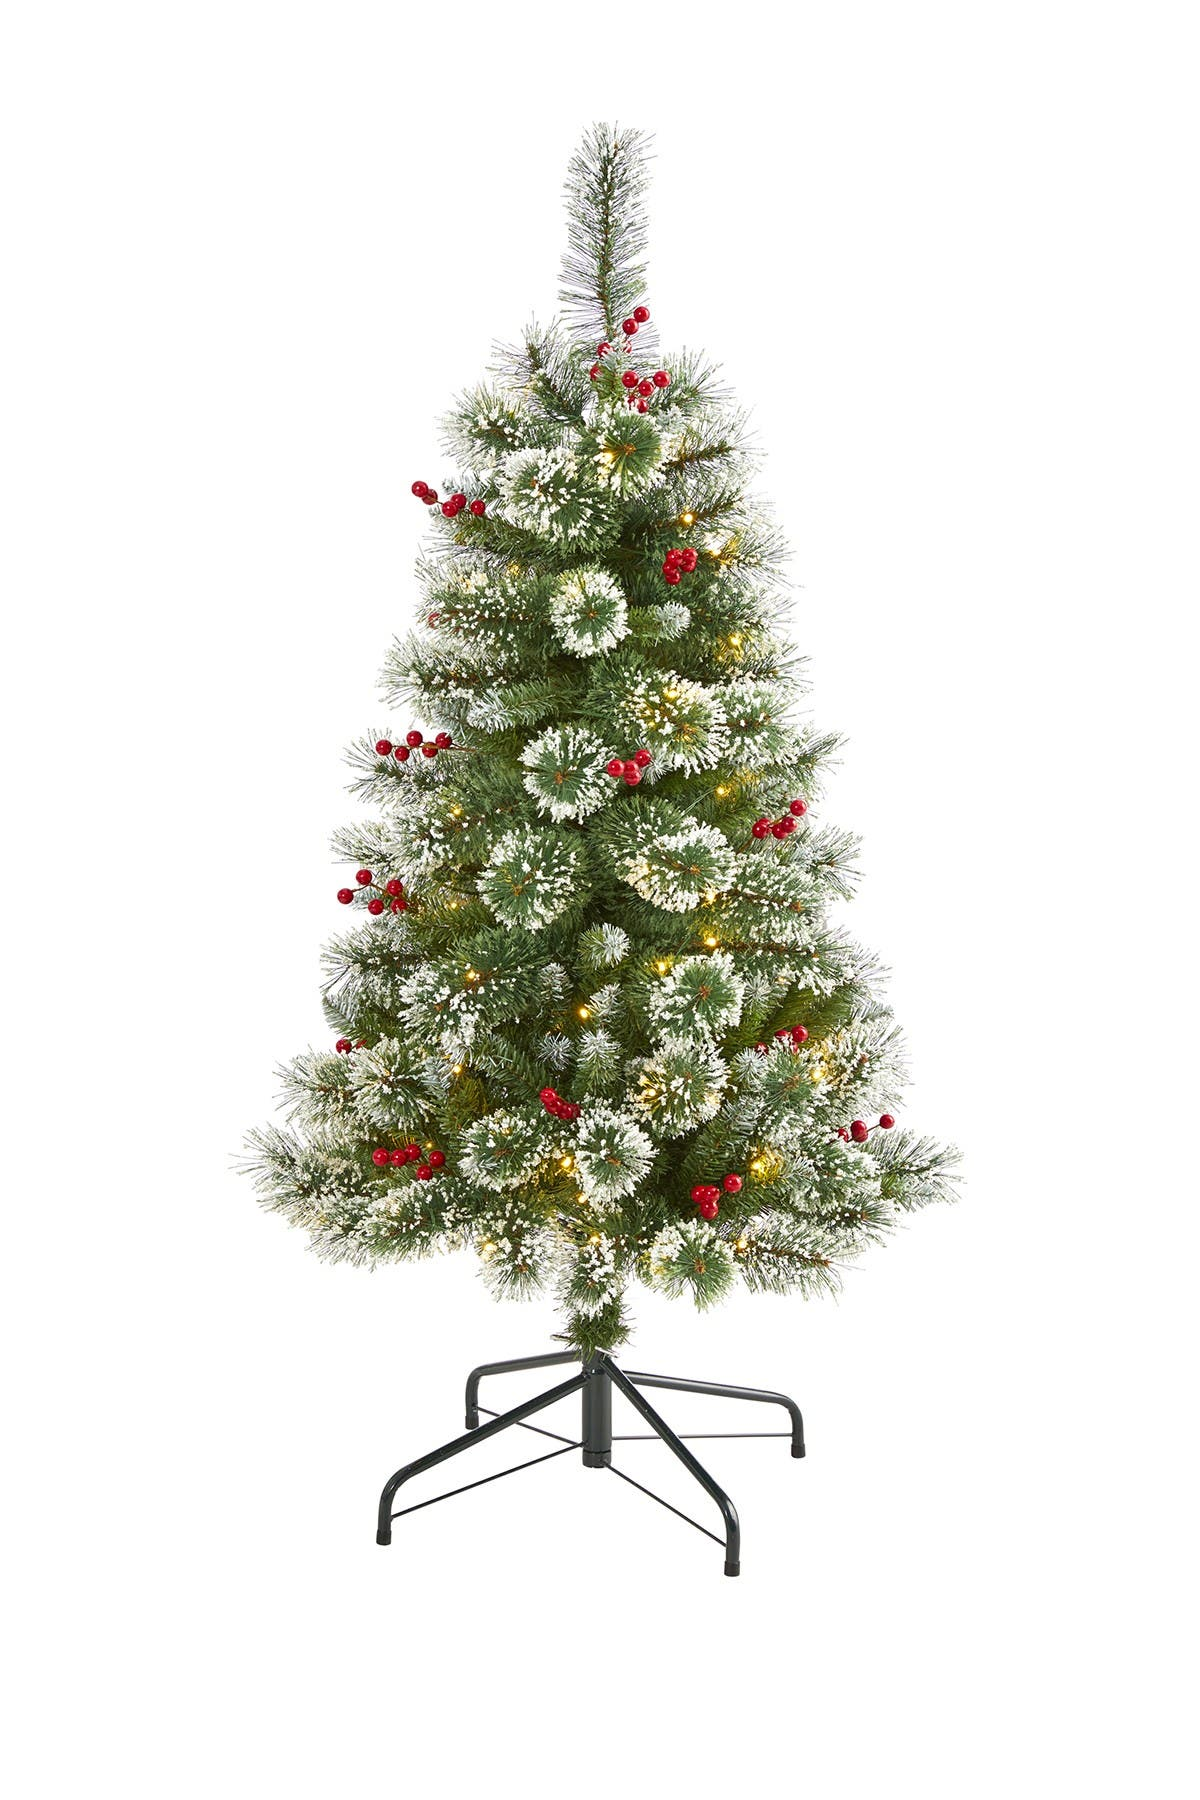 Image of NEARLY NATURAL 4ft. Frosted Swiss Pine Artificial Christmas Tree